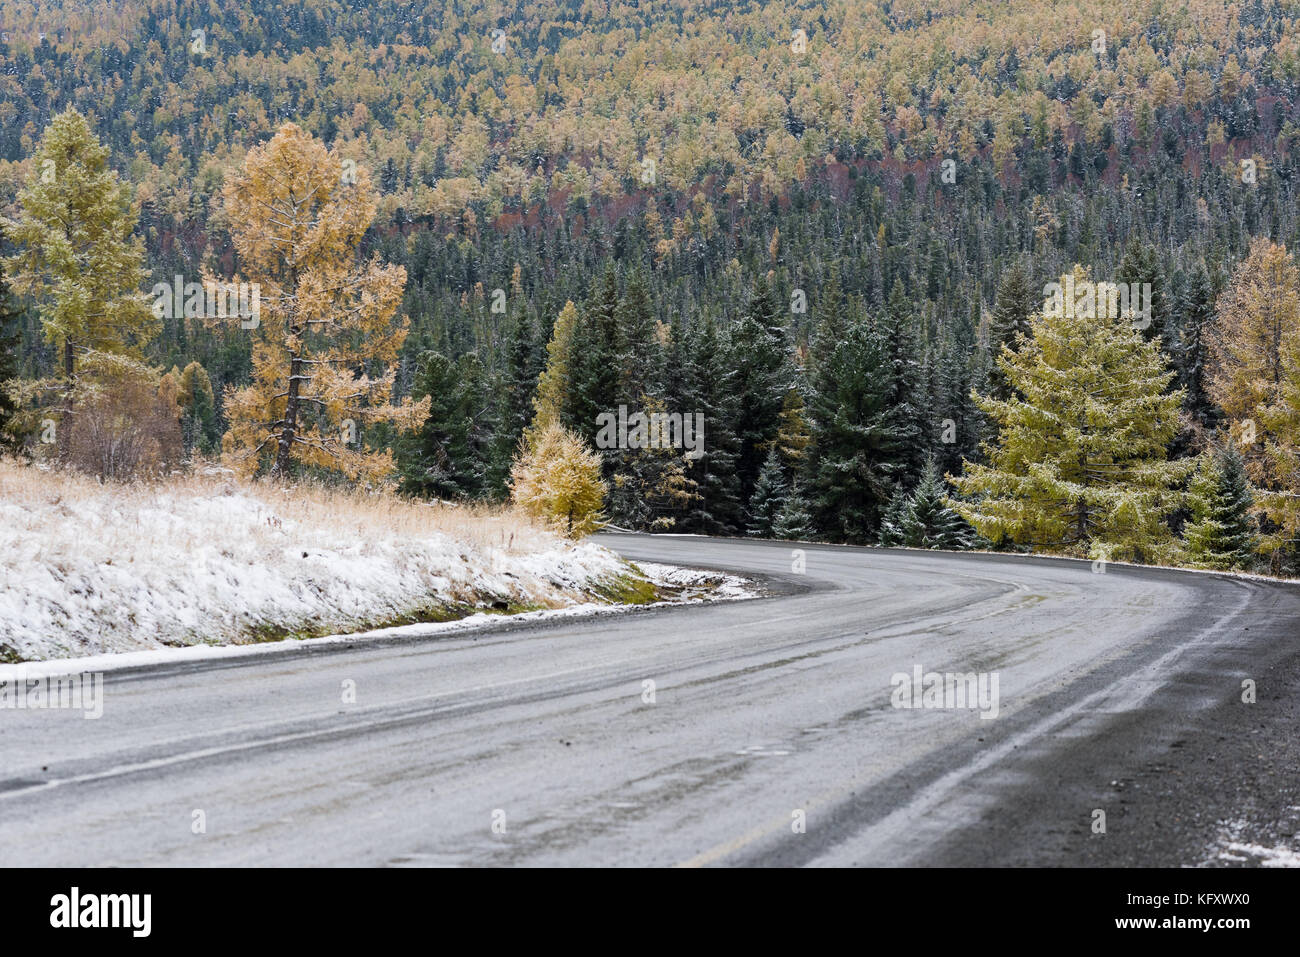 Federal highway M-52 Chuysky tract, asphalted road with markings among the autumn trees covered with snow. - Stock Image